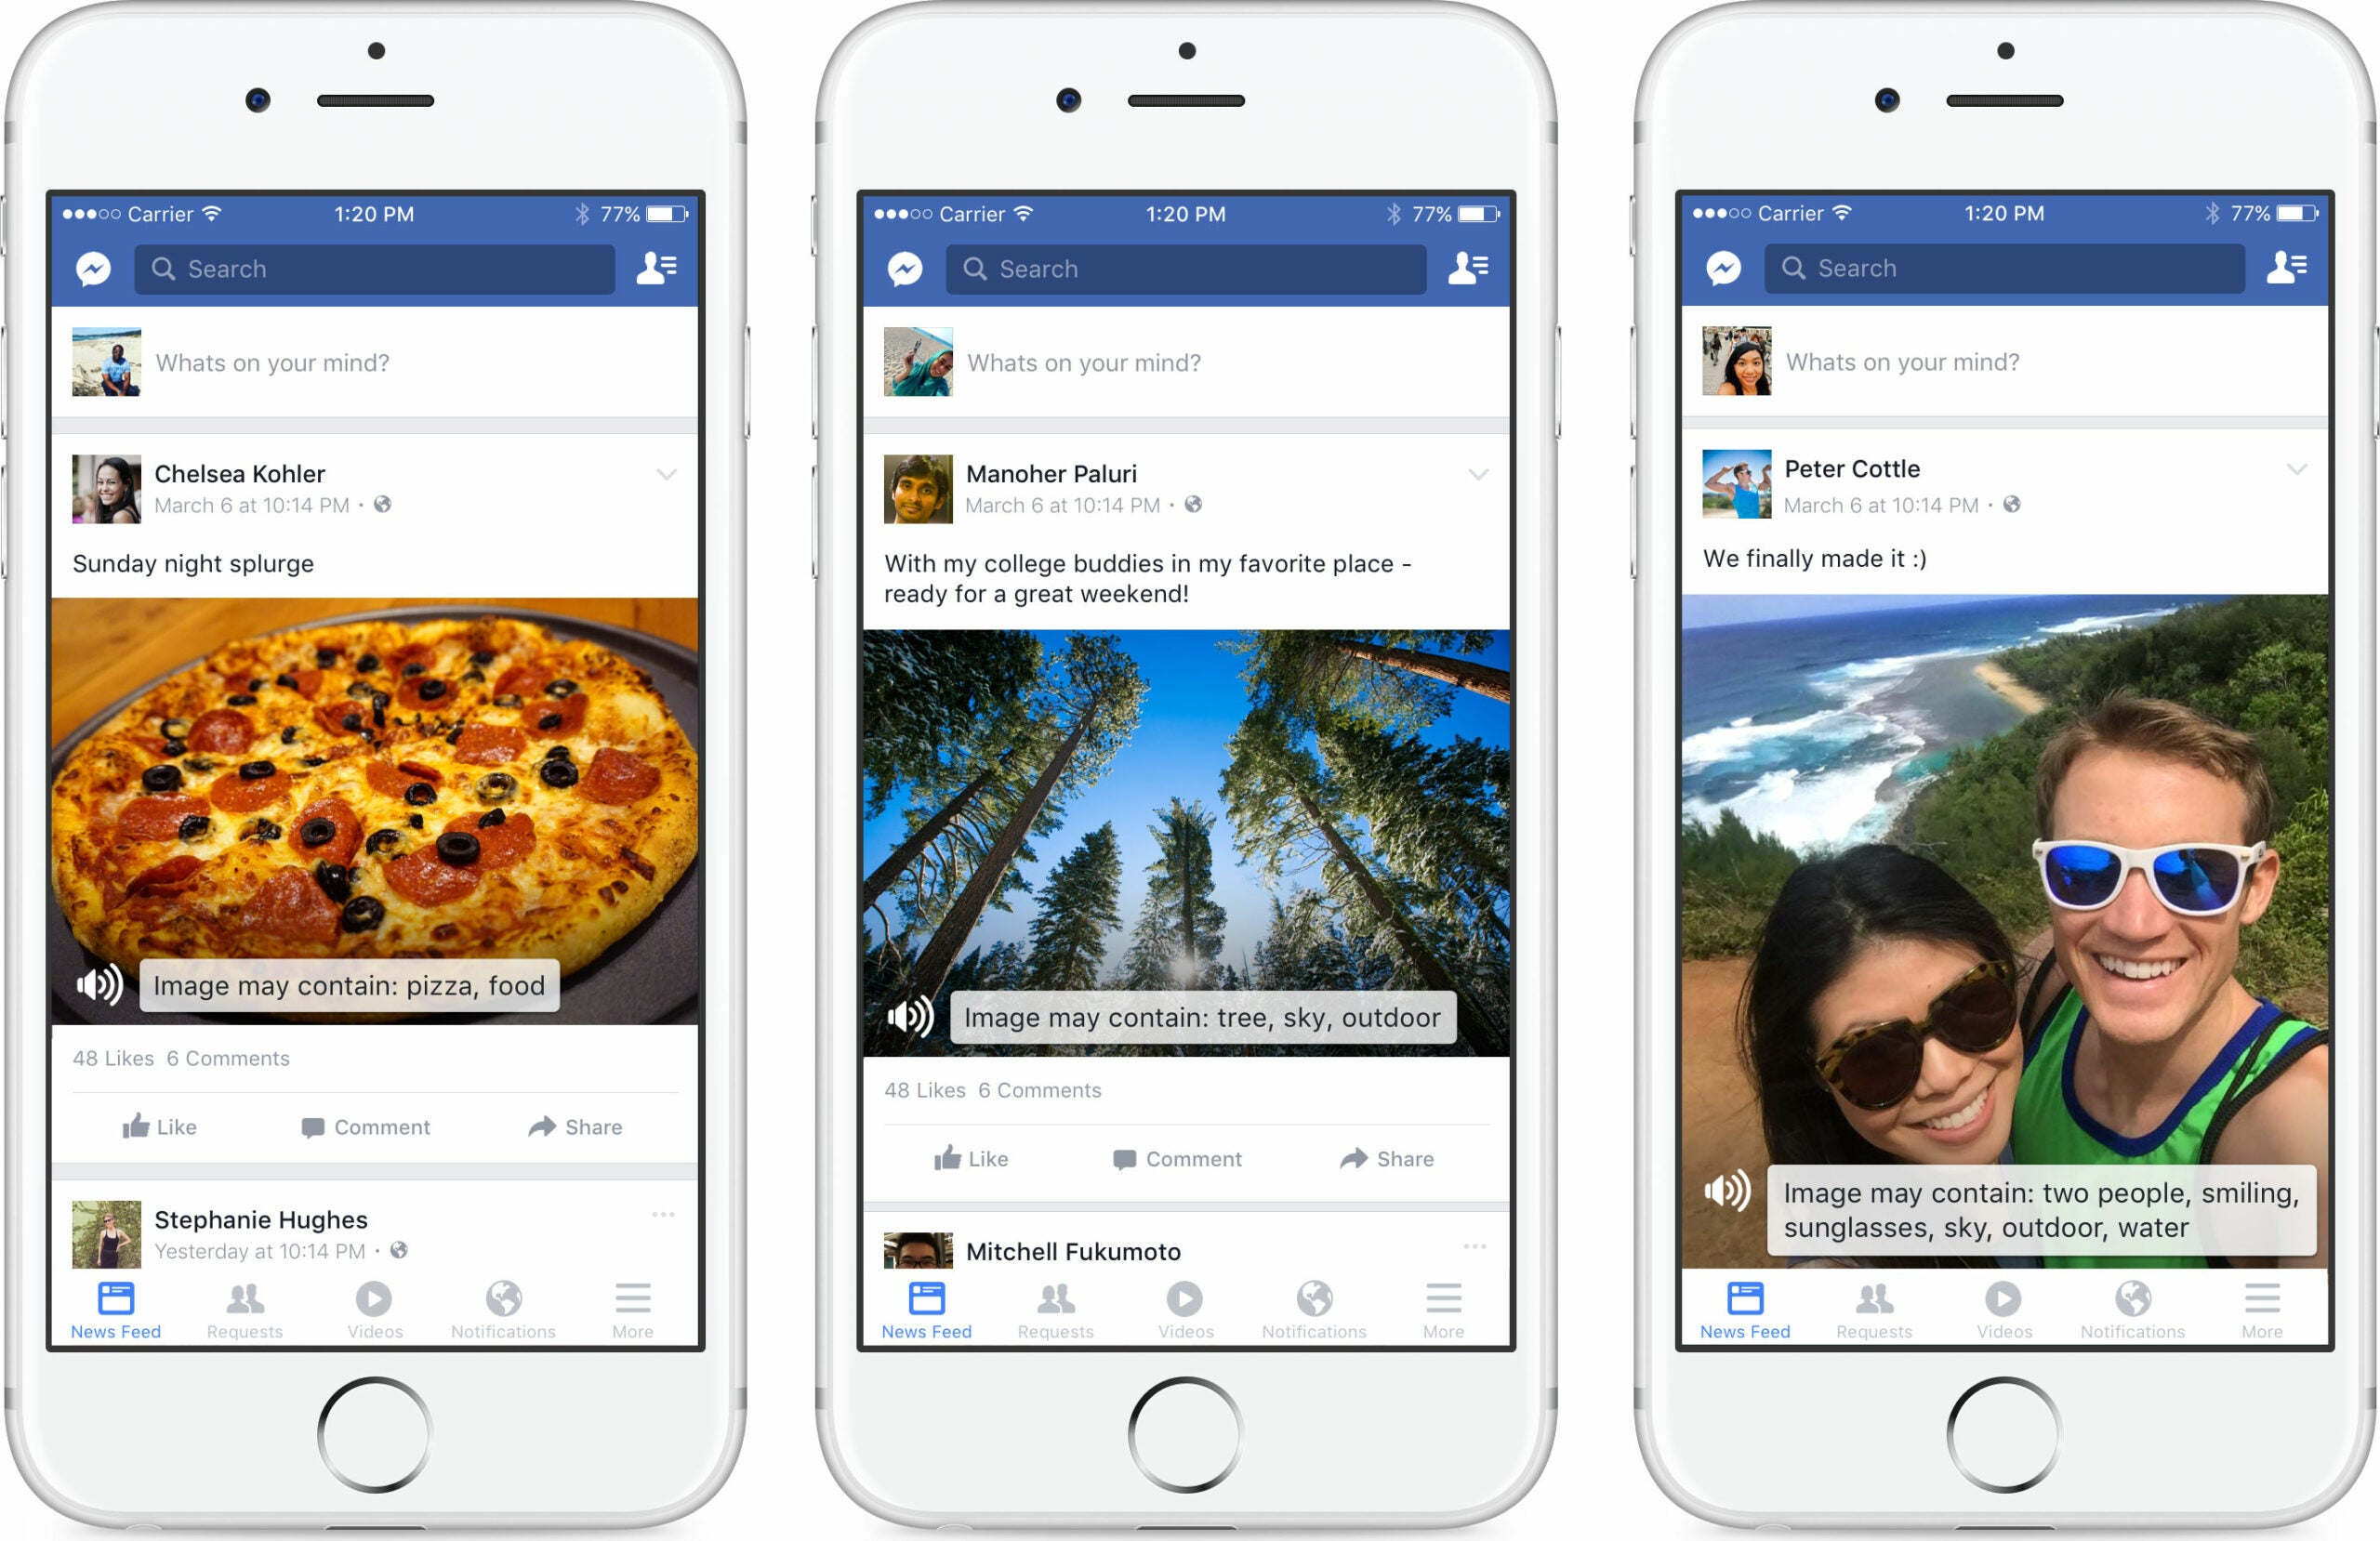 Facebook's new automatic alternative text uses artificial intelligence to recognize objects and people in photos.